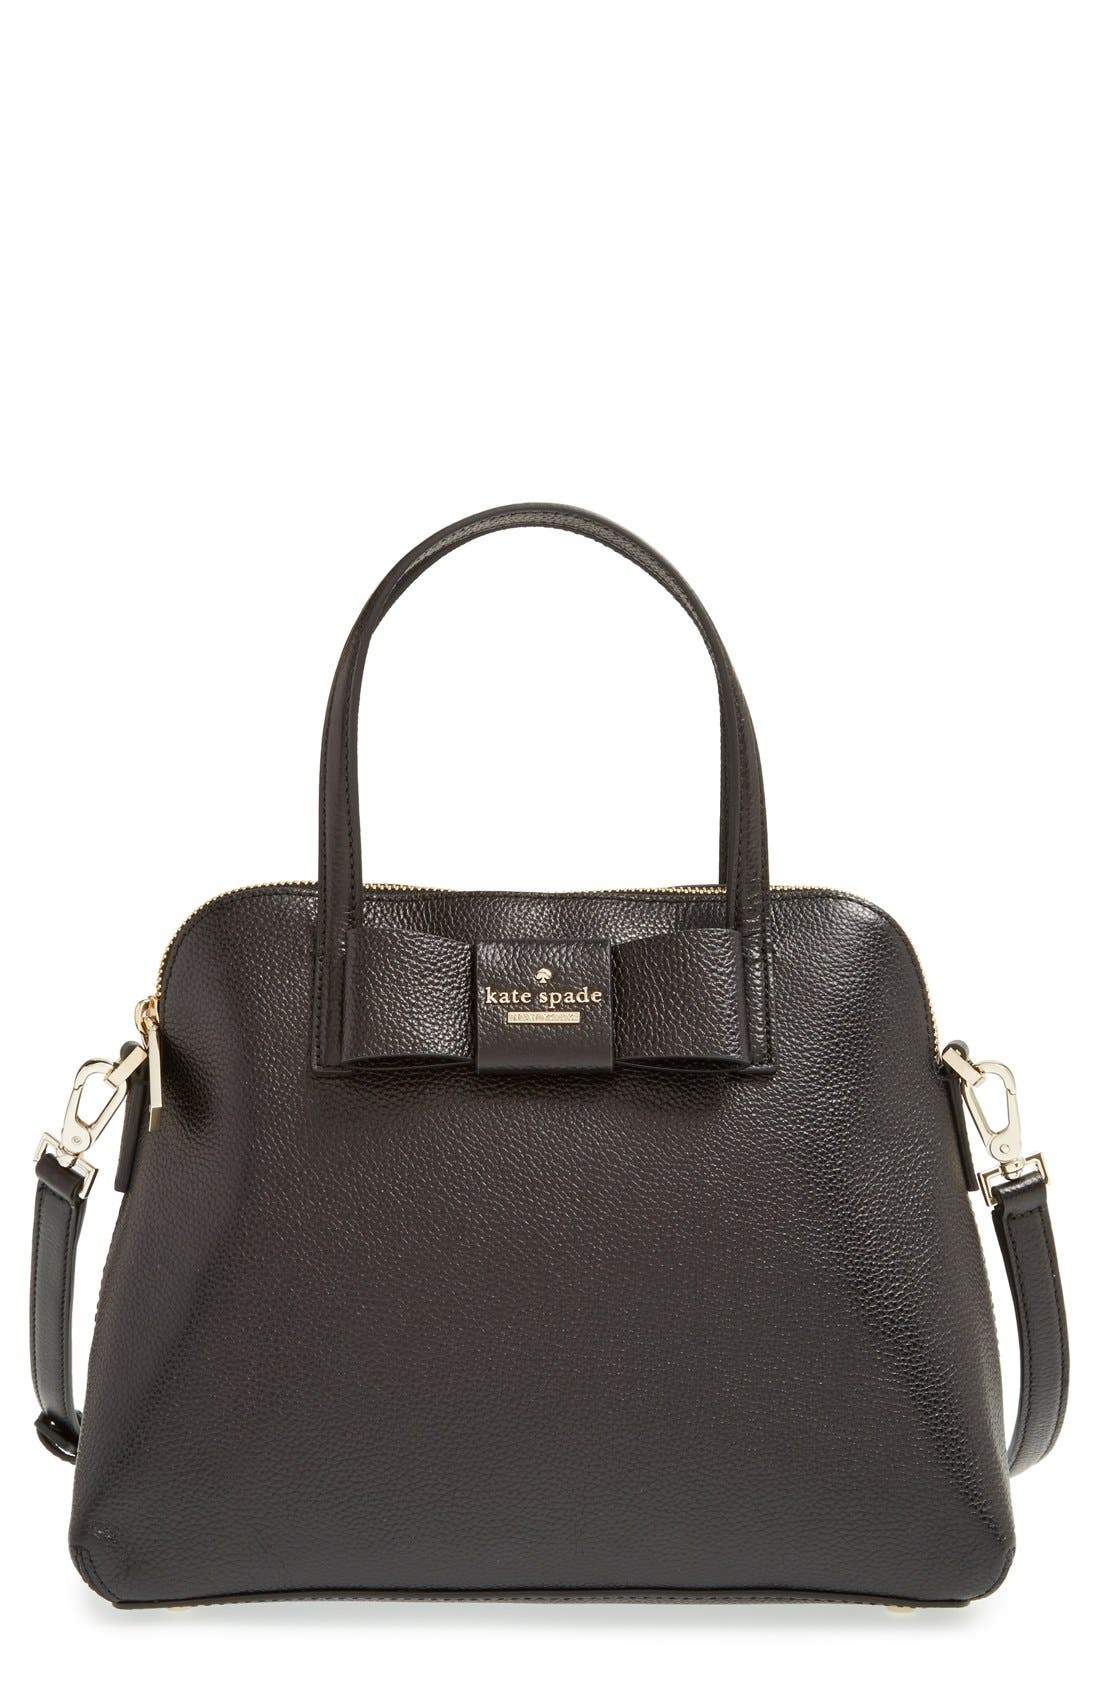 KATE SPADE NEW YORK 'julia street - maise' satchel, Main, color, 001